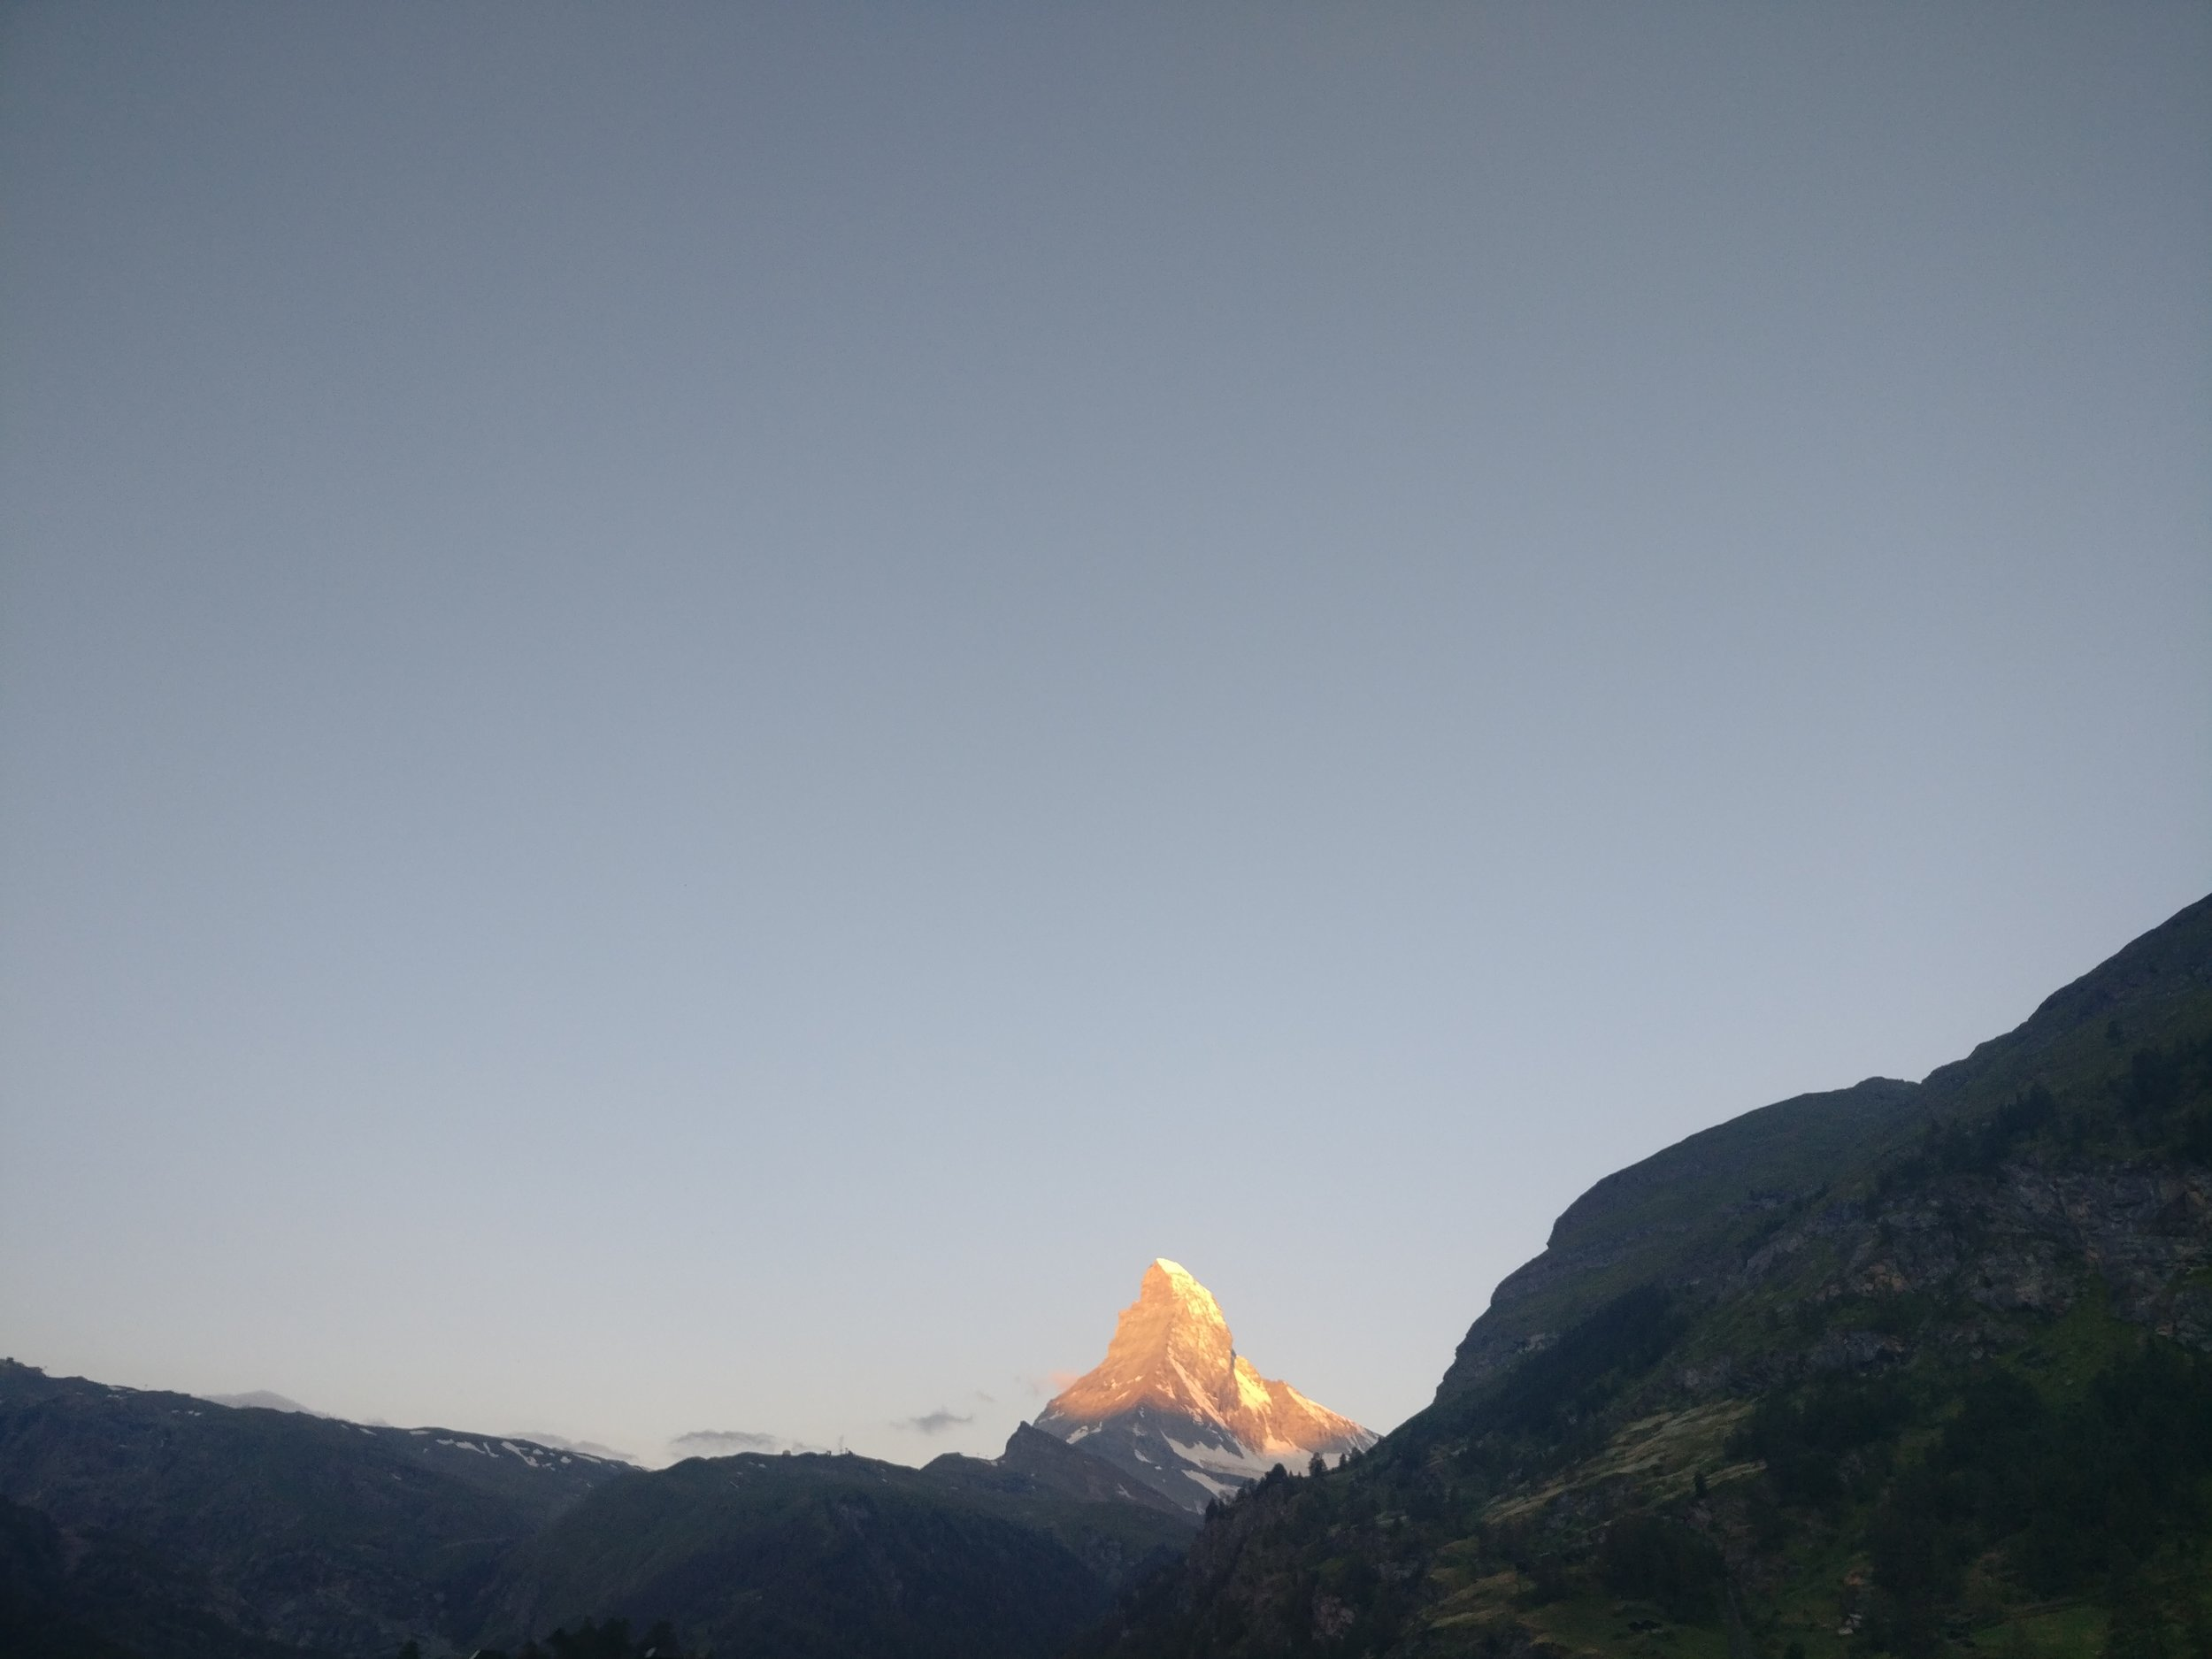 Rising early to see the Matterhorn Alpin Glow is a real treat